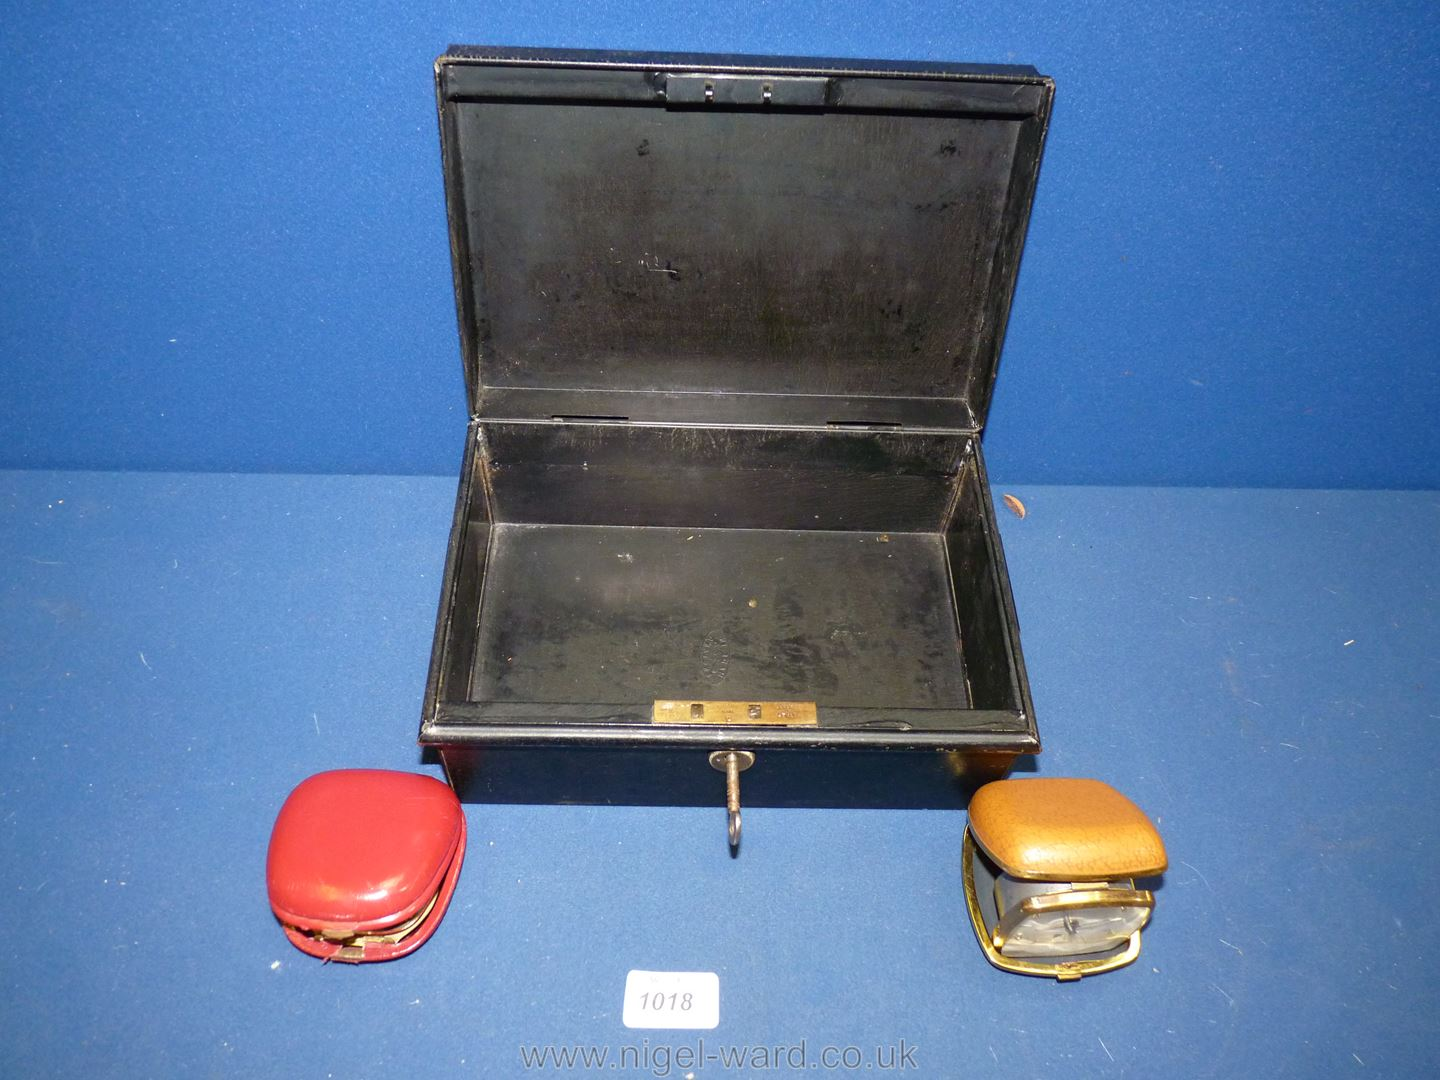 A metal Deed Box with key, and holding two cased travelling alarm clocks.